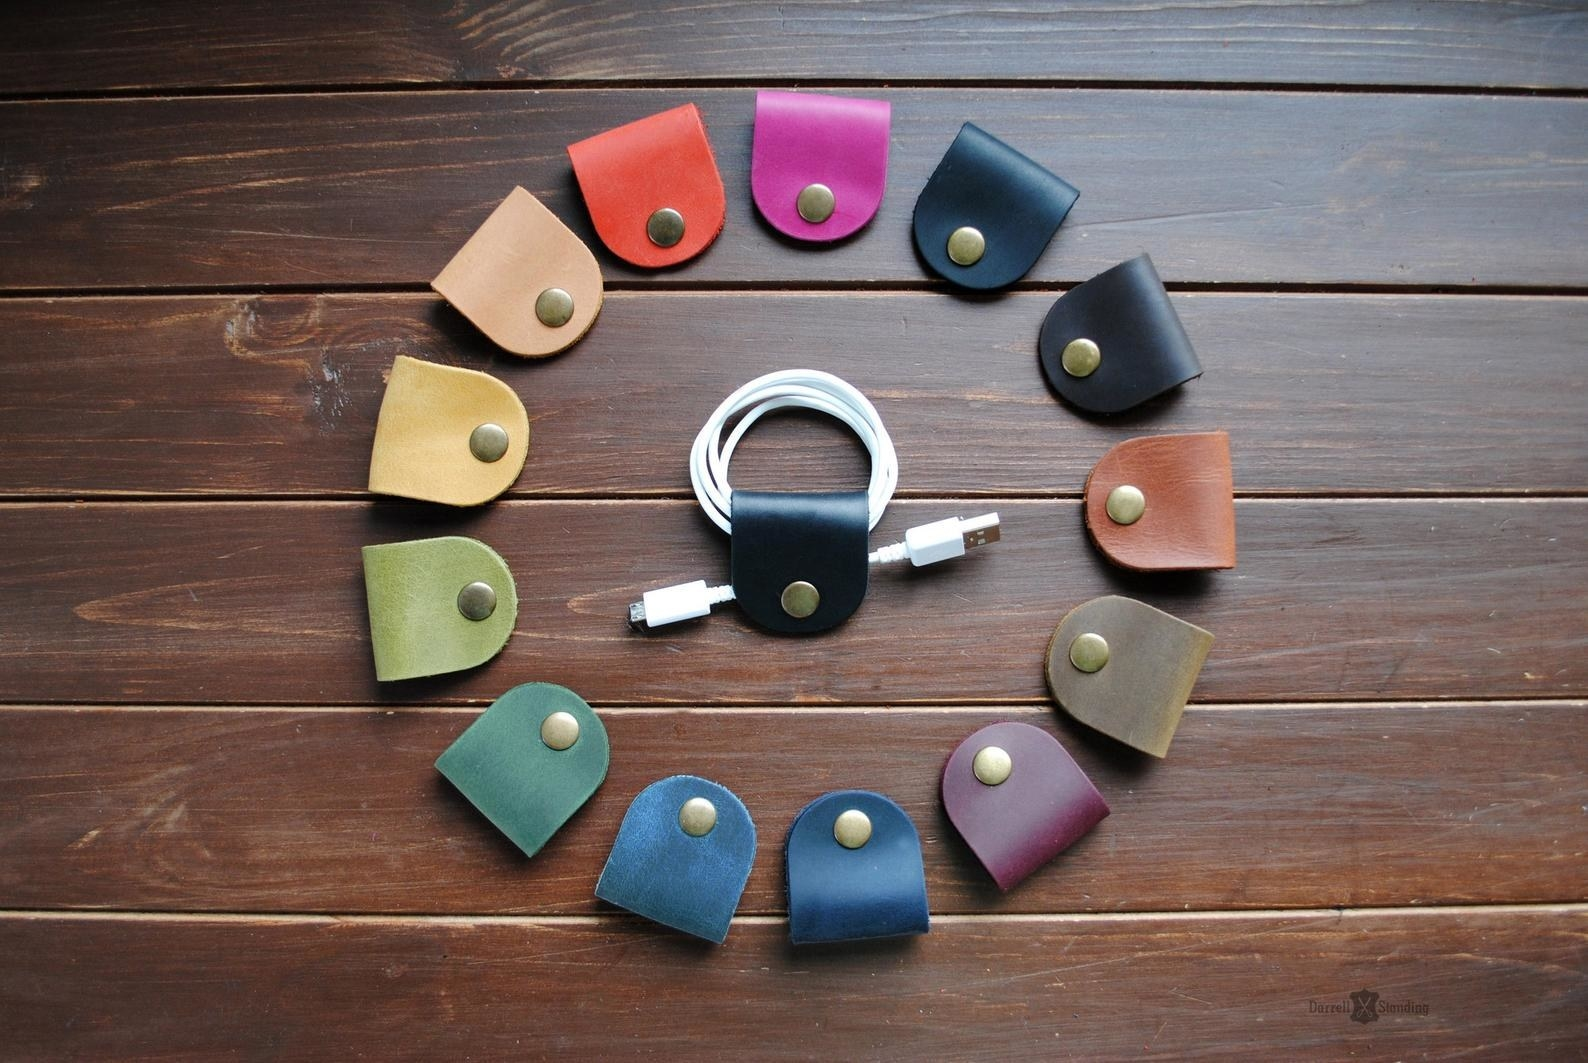 Small leather flaps clasped together by a button and keeping a USB cord from getting tangled